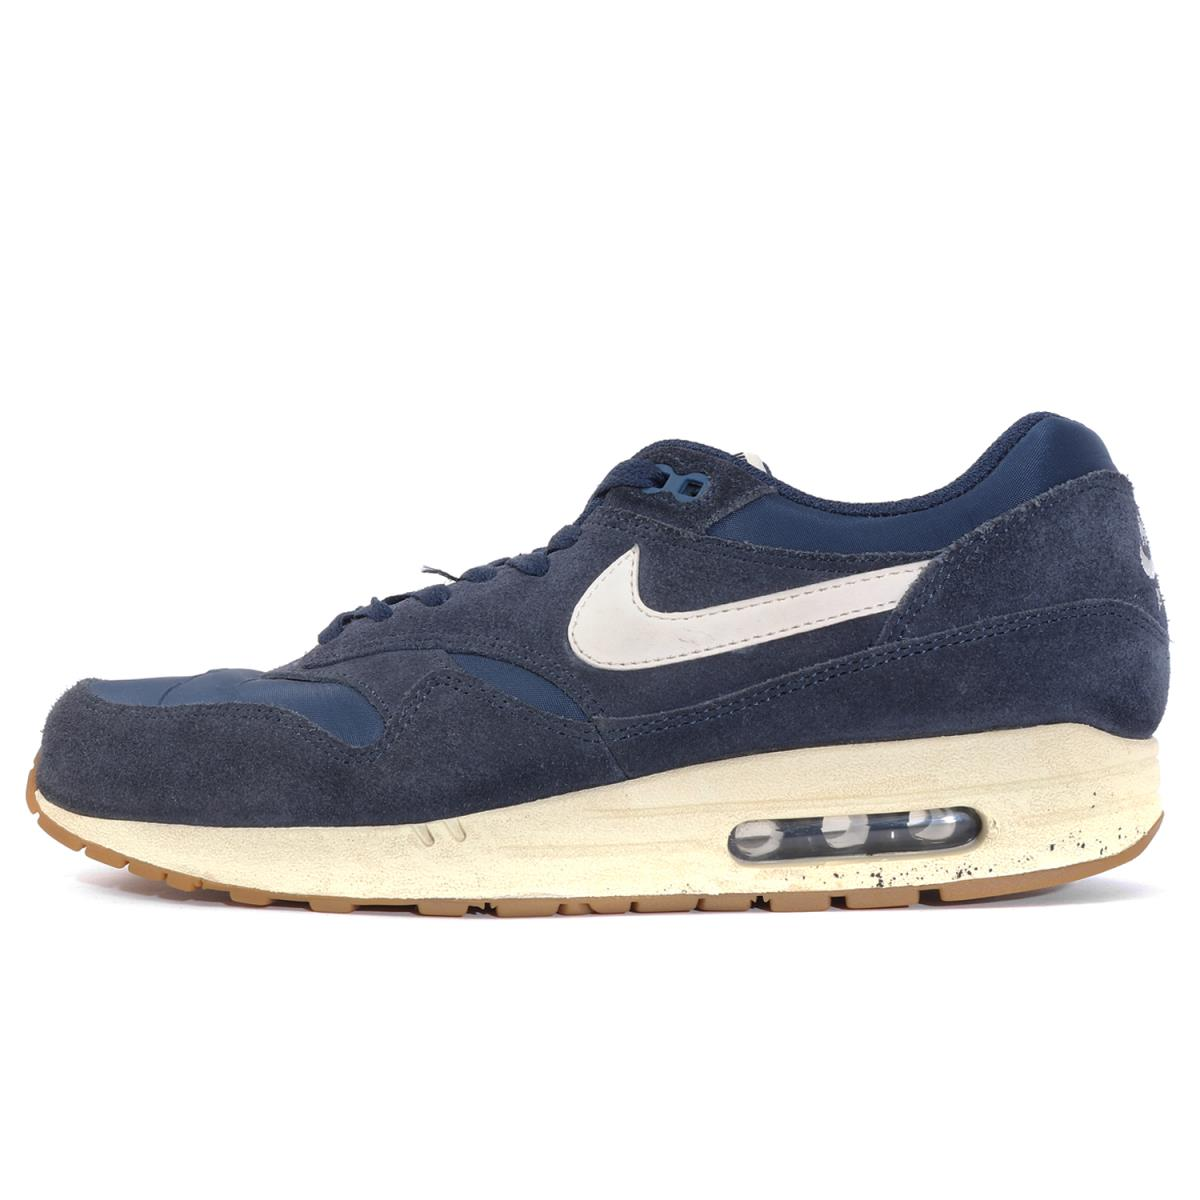 brand new 2492a 8fb46 NIKE (Nike) AIR MAX 1 ESSENTIAL (537,383-411) midnight navy US10(28cm)